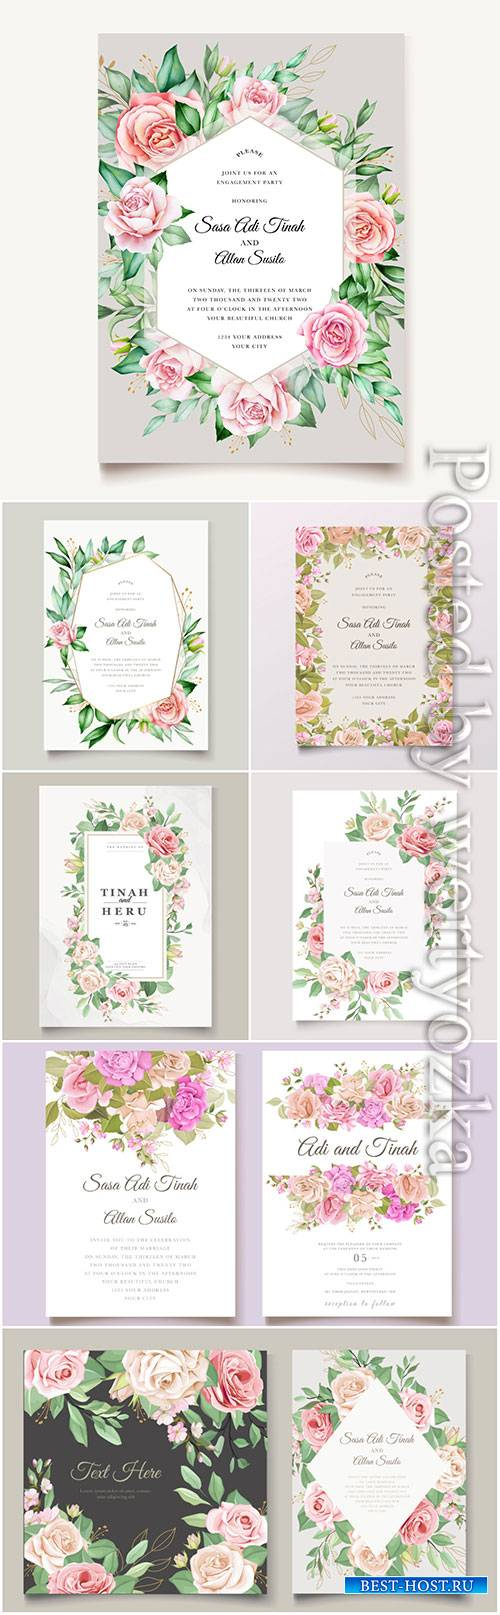 Beautiful wedding invitation with flowers in vector